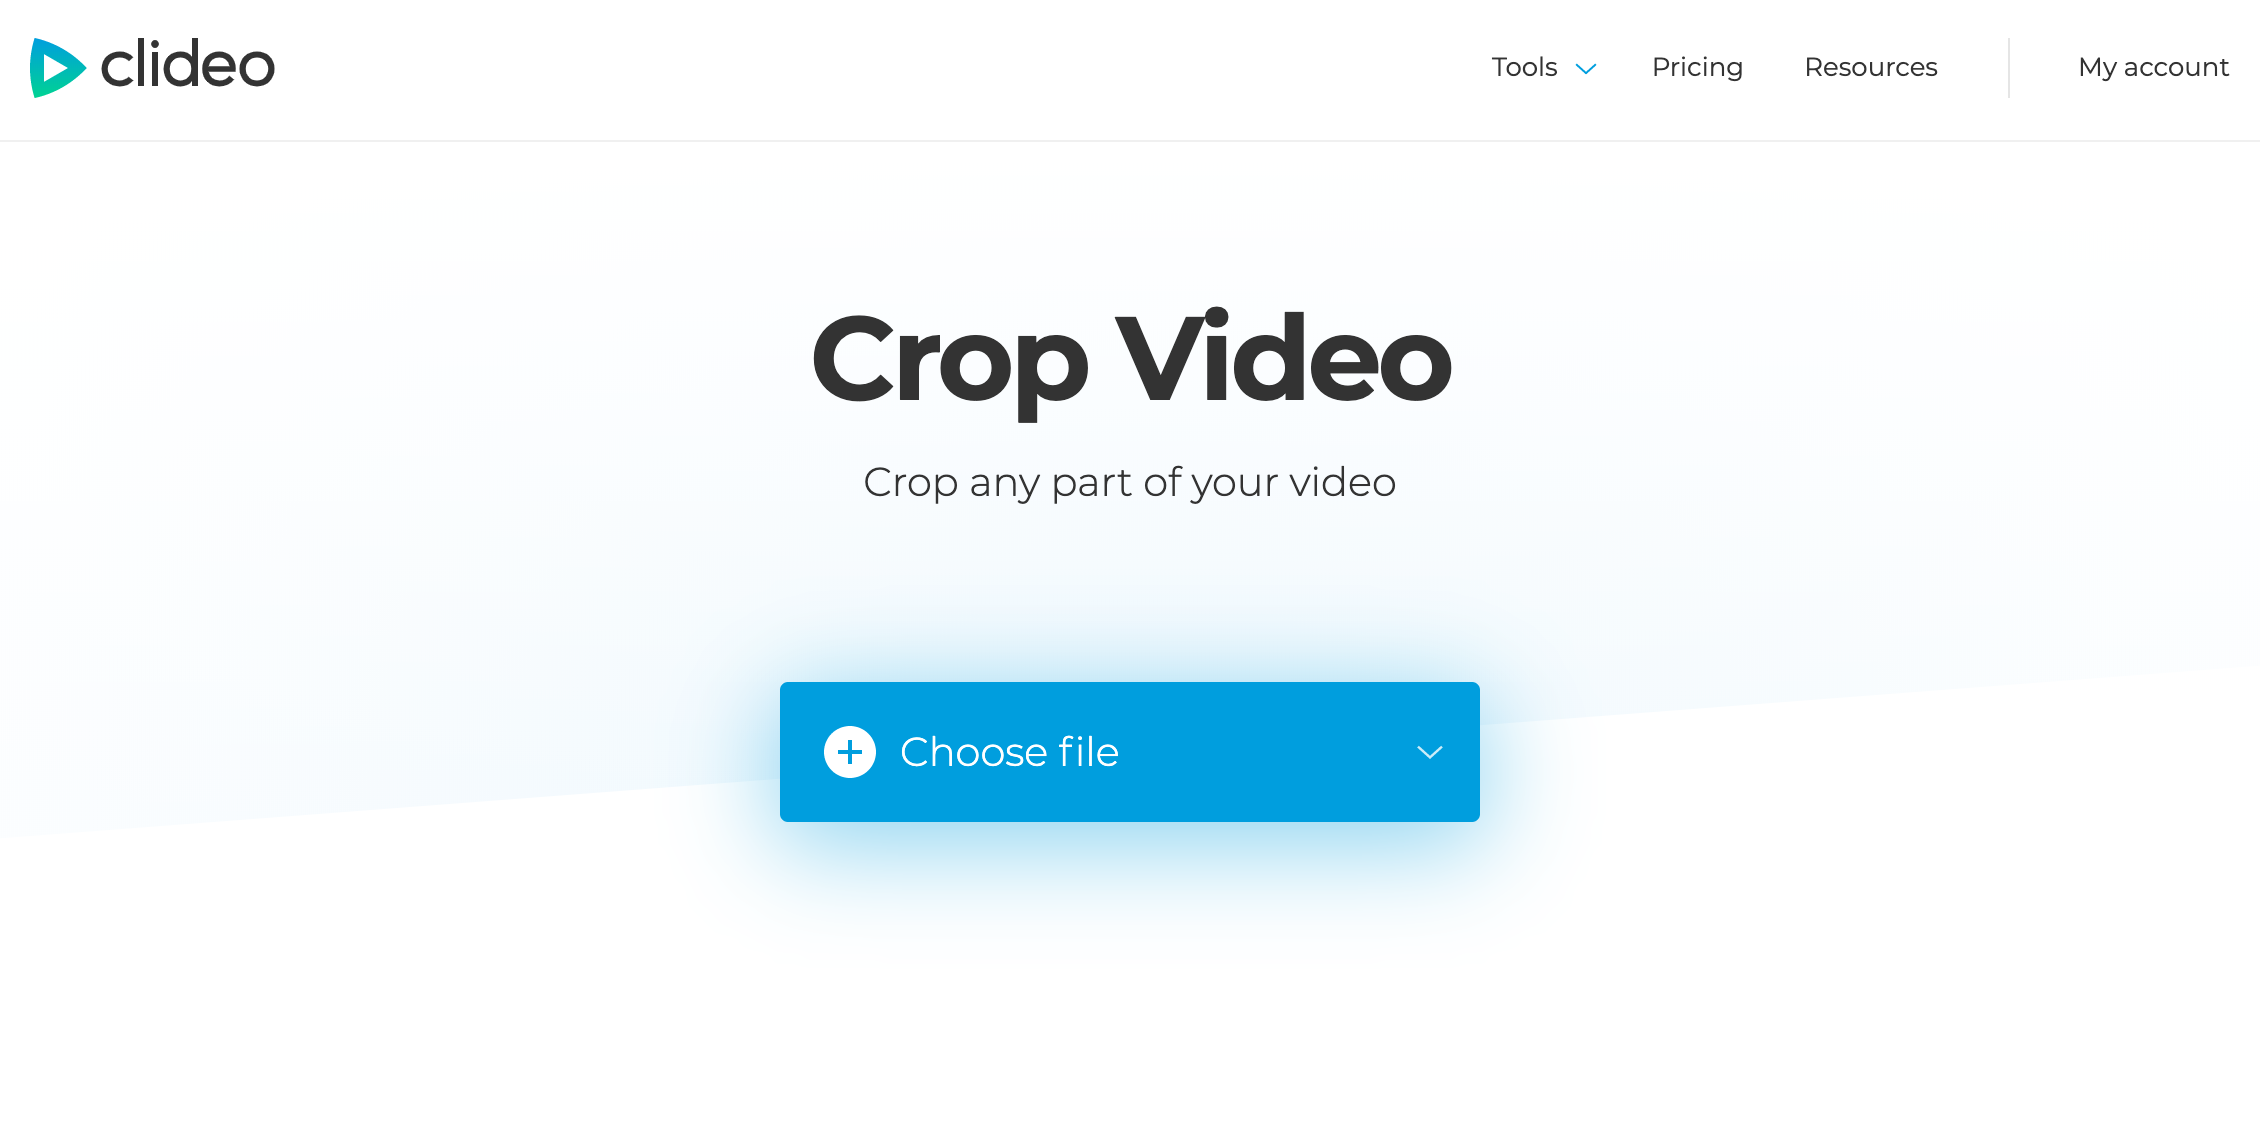 Open the Clideo's Video Cropping tool